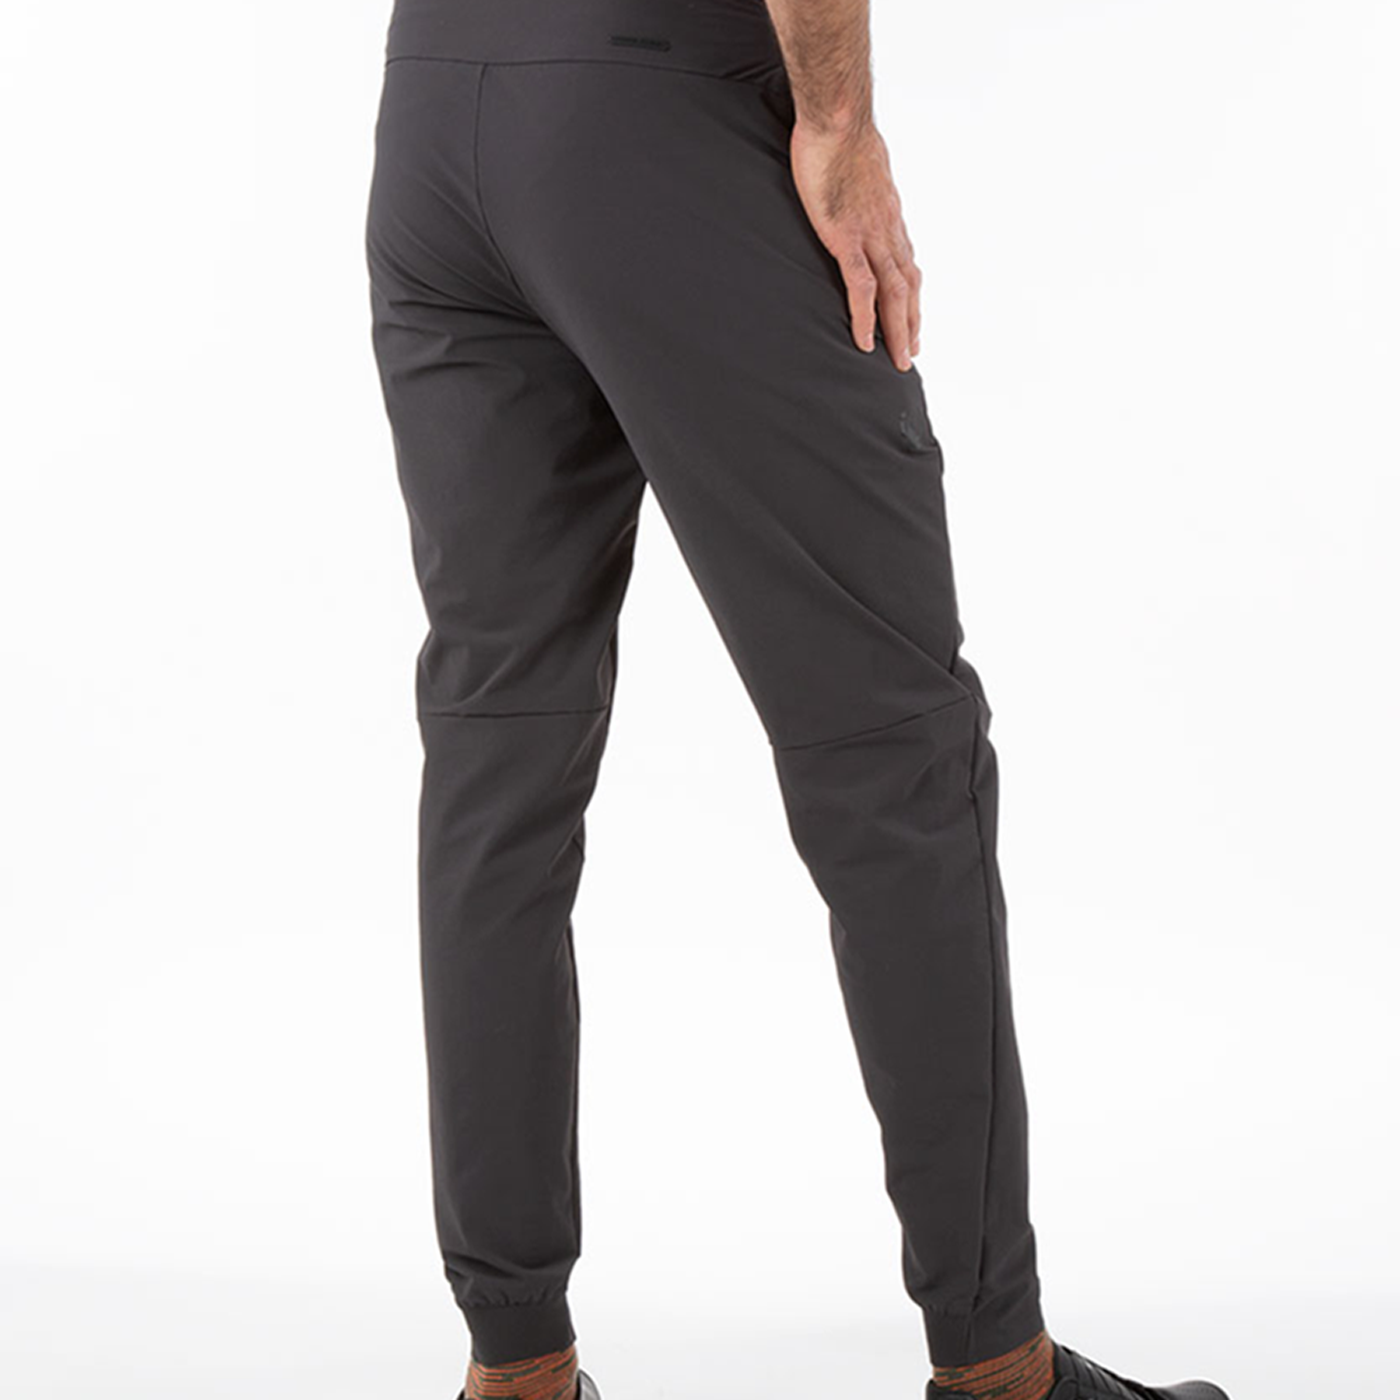 Launch Trail Pant4